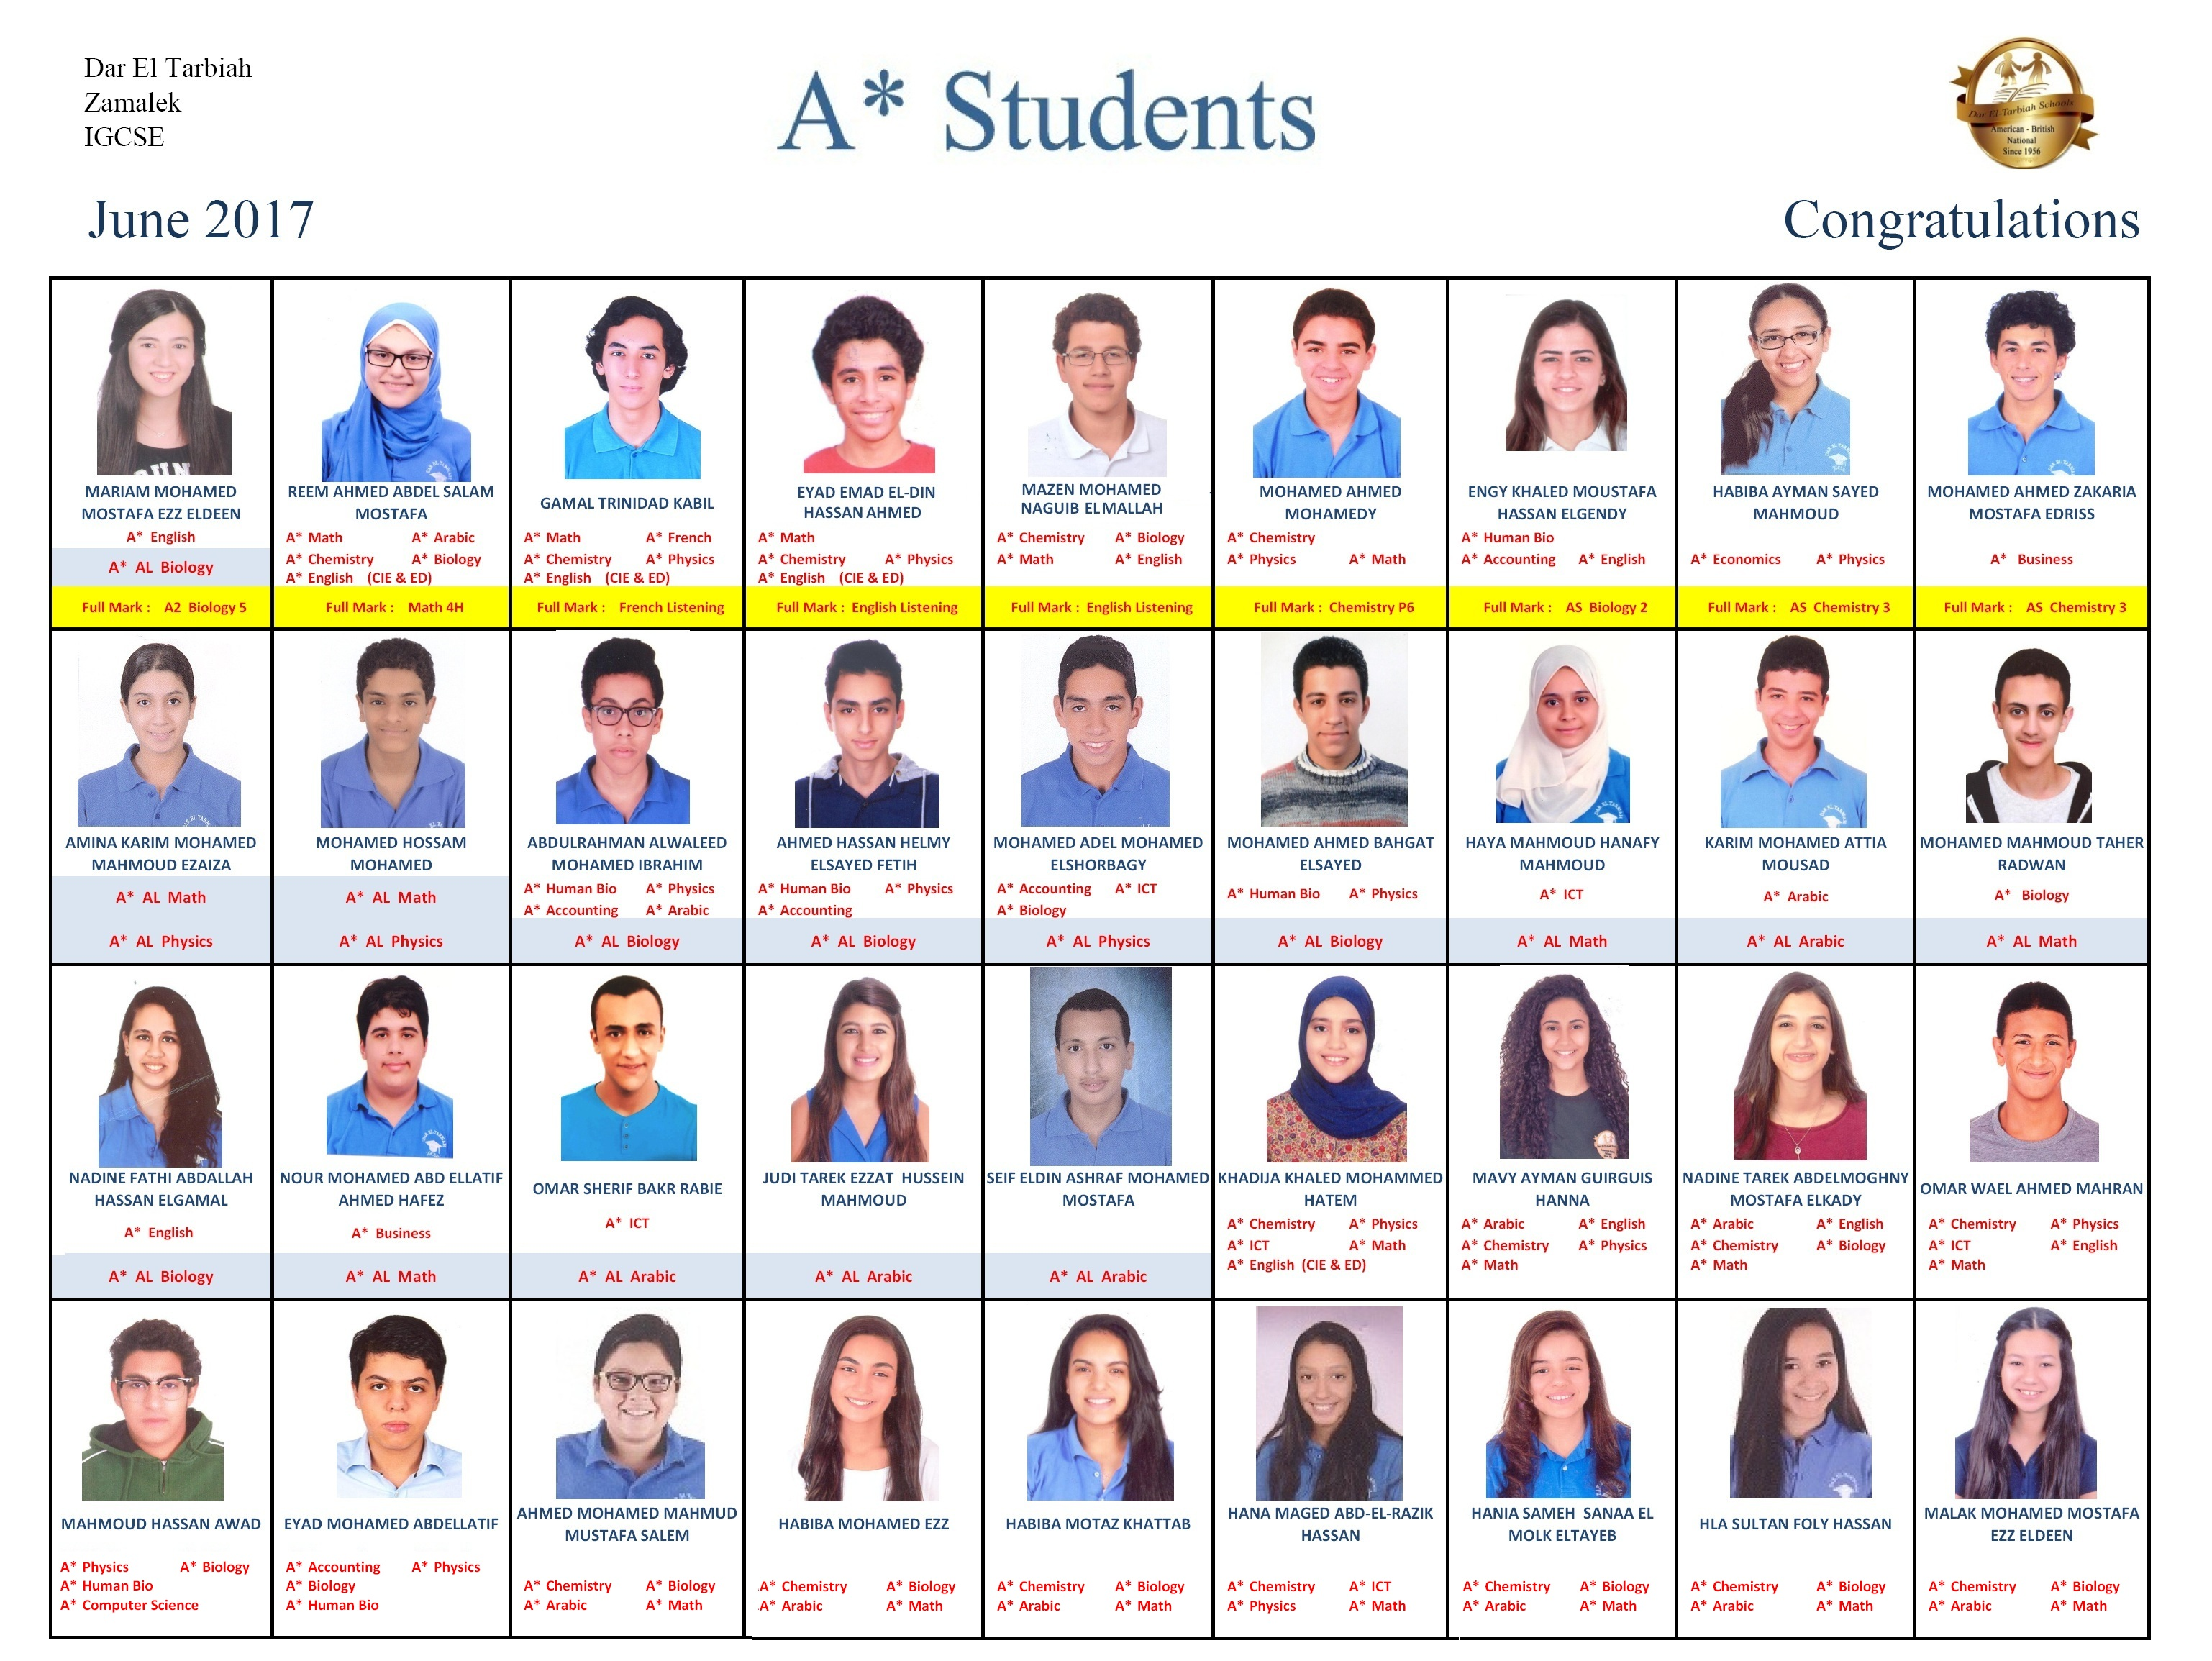 IG Zamalek : A* Students 2017